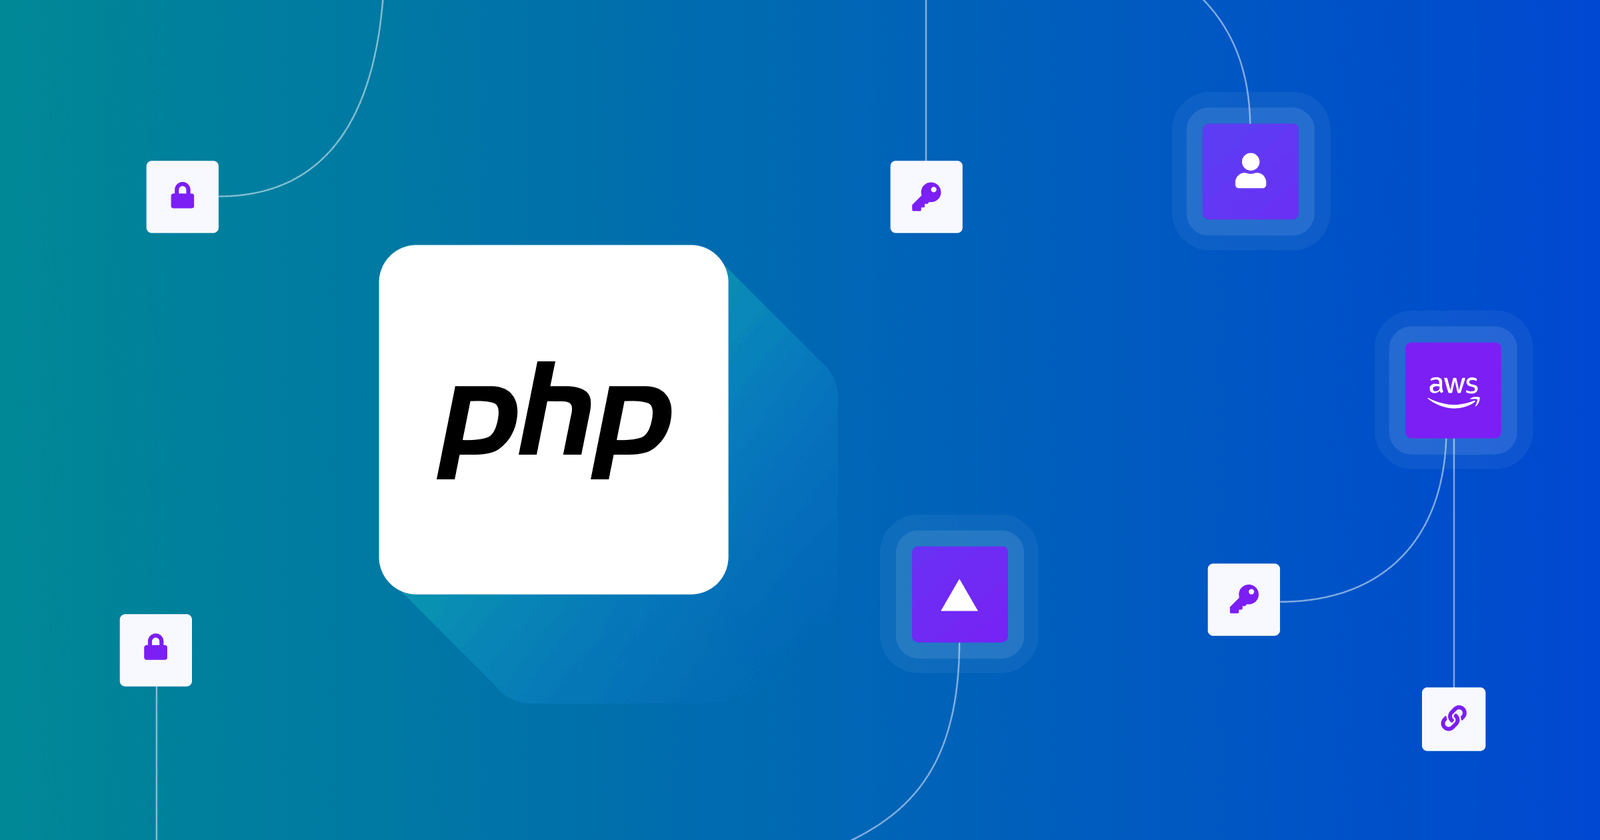 Configuring PHP Applications using Environment Variables